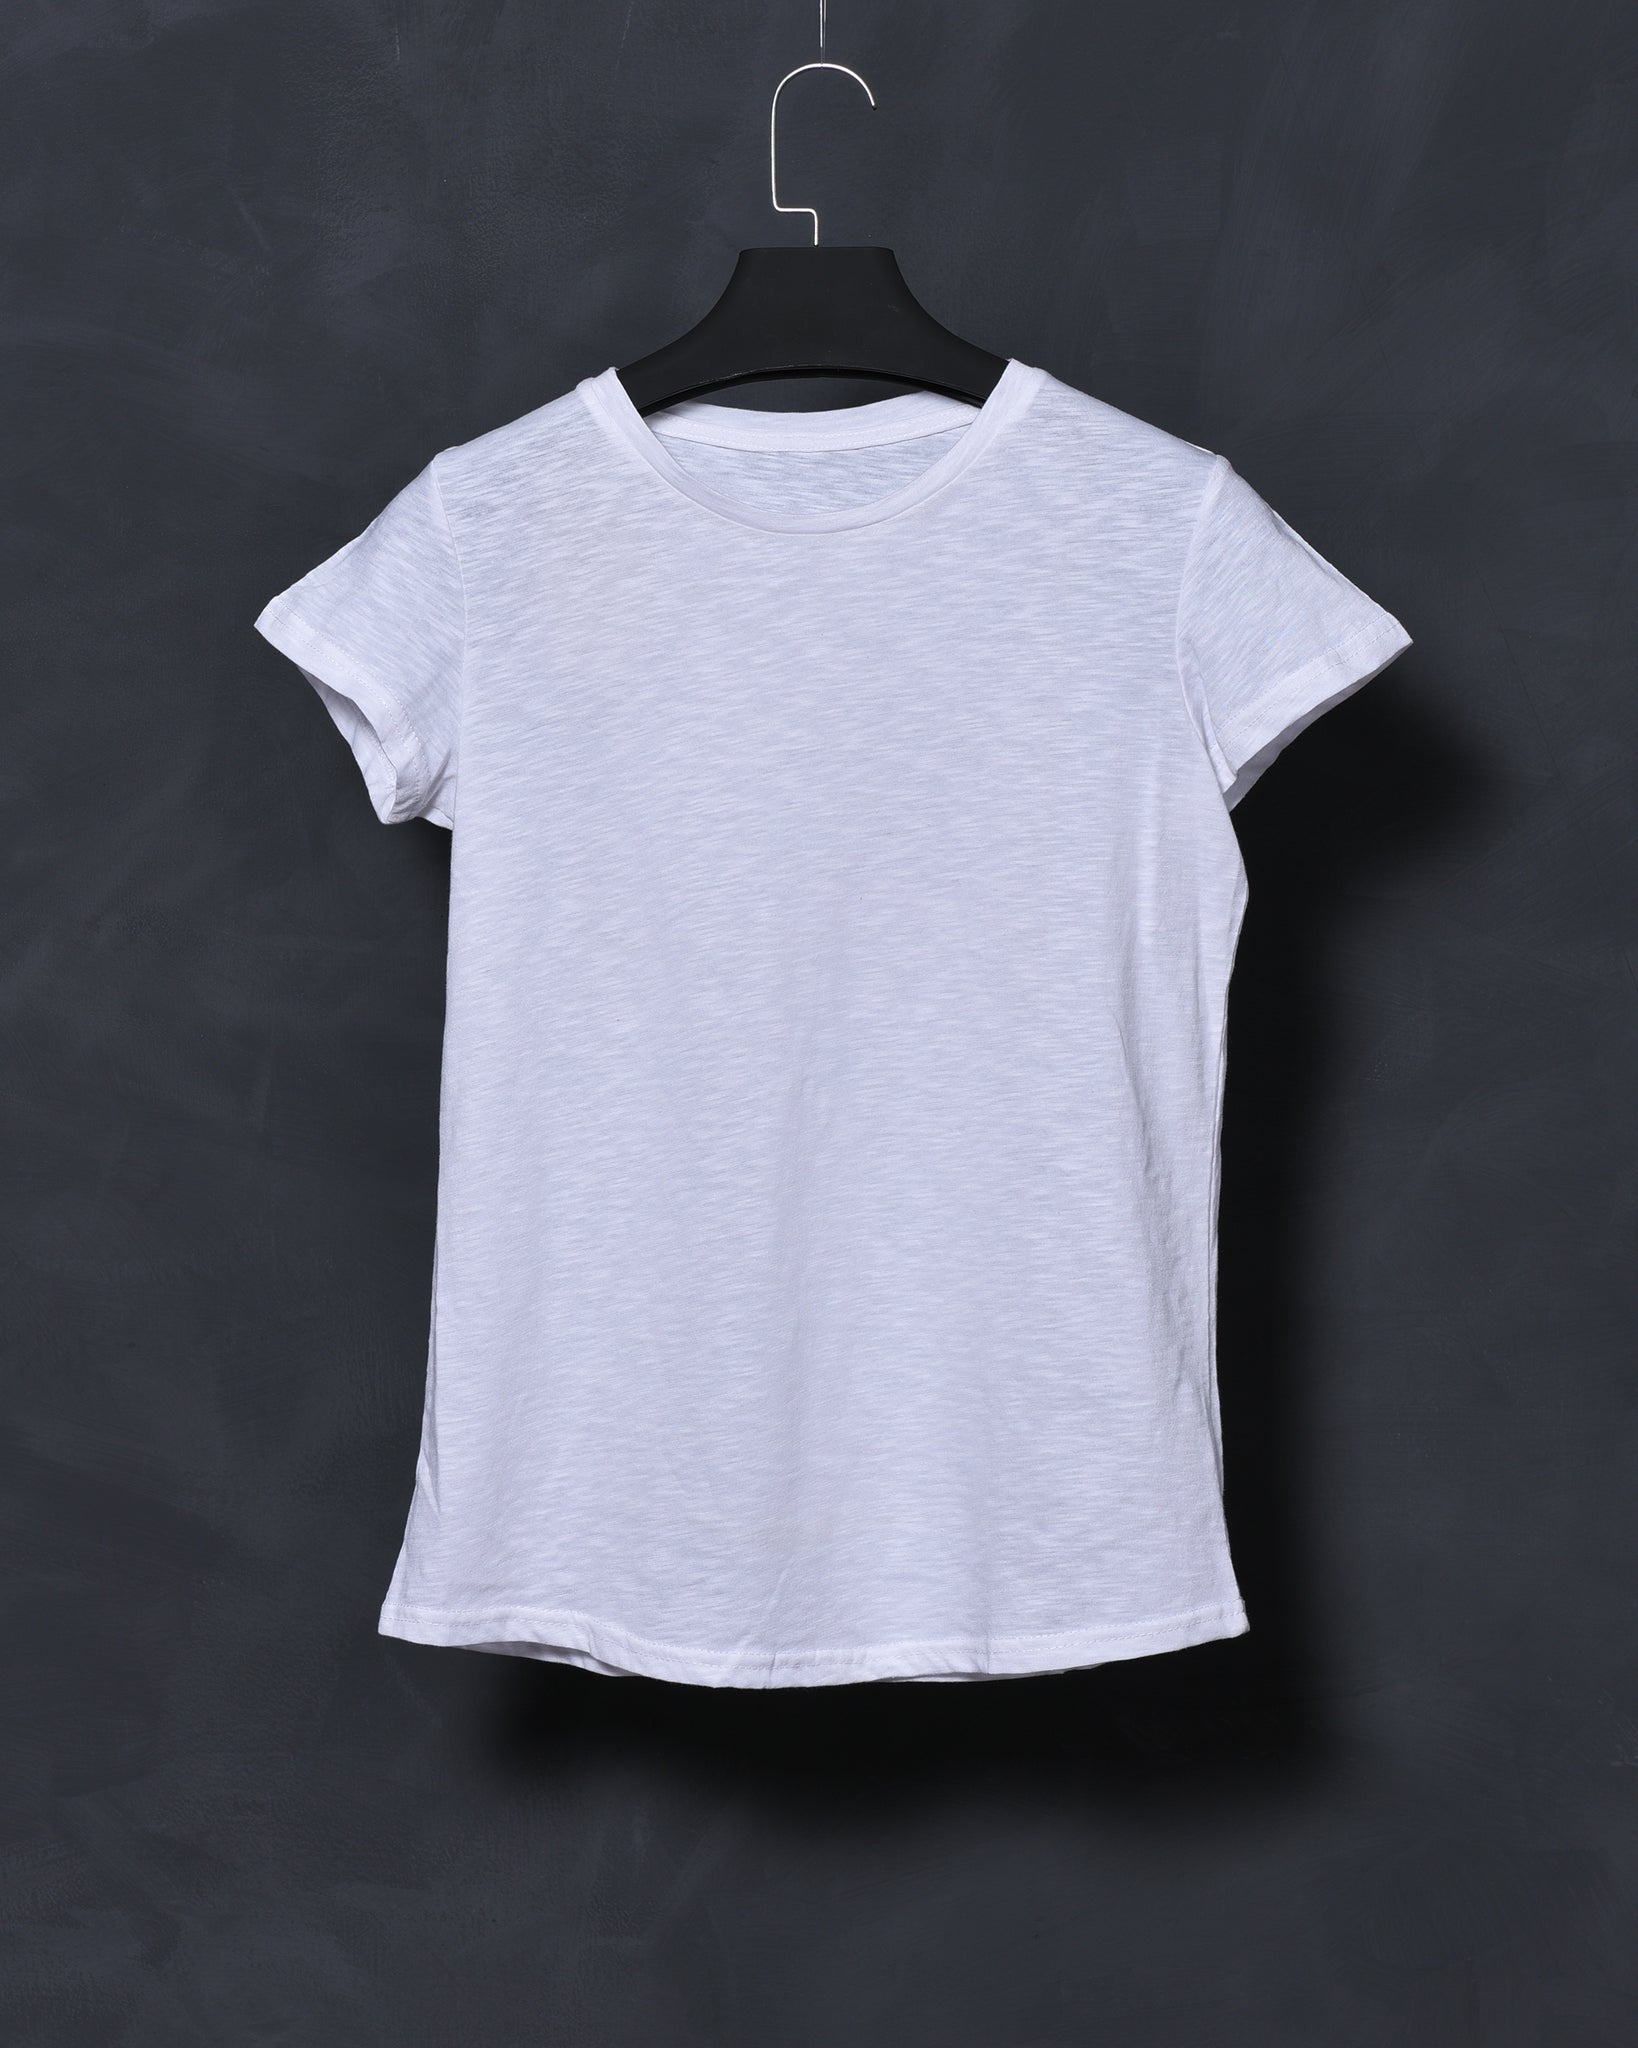 White Fit T-shirt for Women